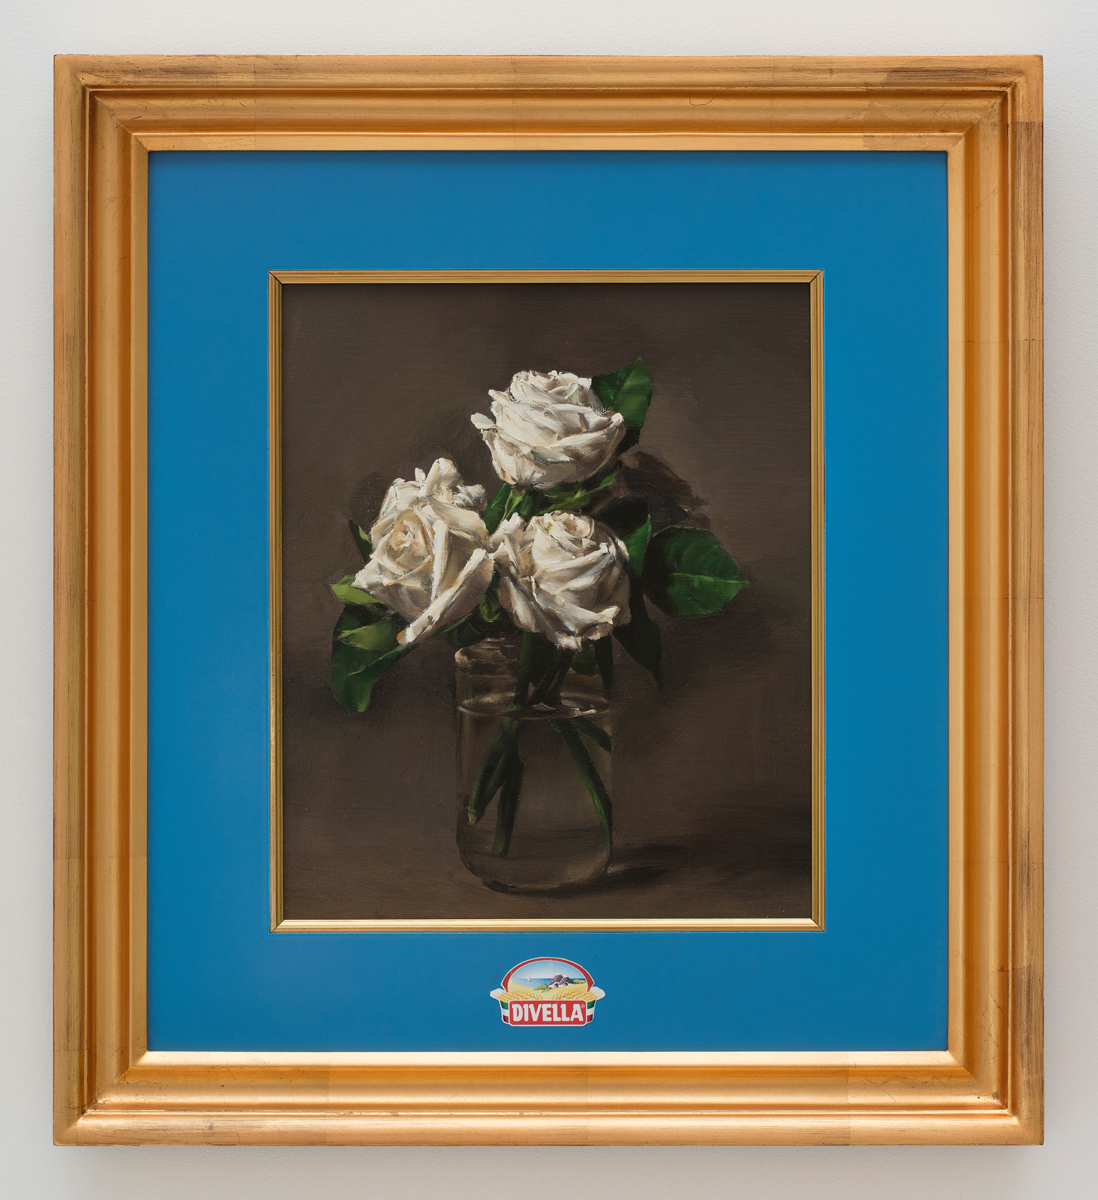 Roses in a Divella jar, 2018, Oil on linen in artist's frame, 60.9 x 55.2 cm 이미지 제공: 갤러리현대 Courtesy of the artist and Gallery Hyundai.